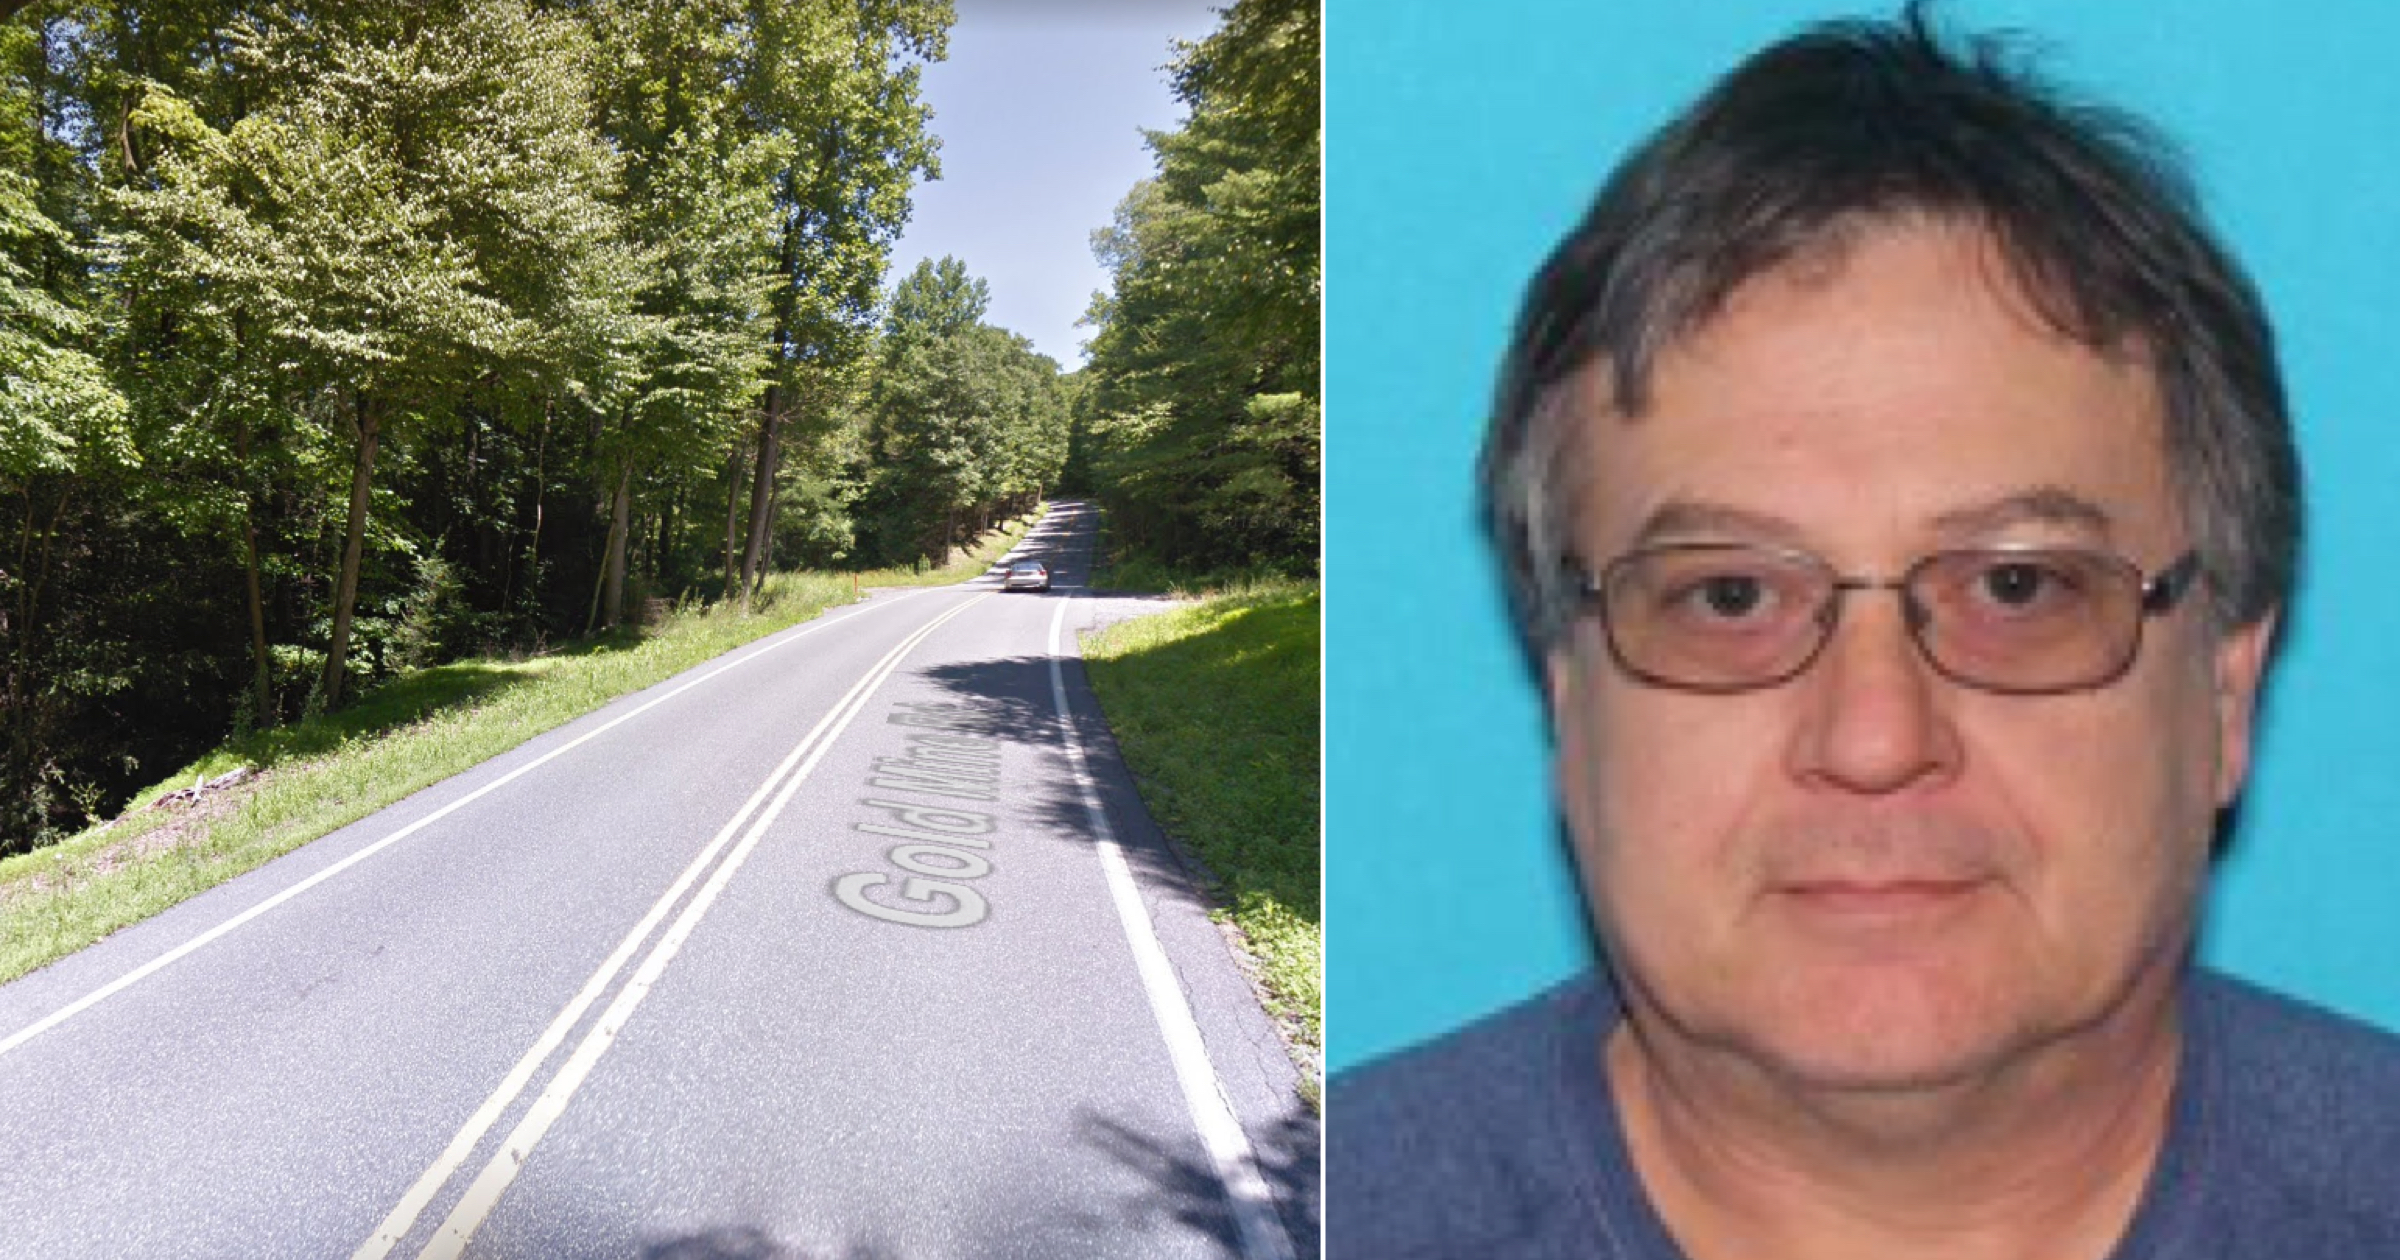 Missing man found dead following State Police search (Updated)